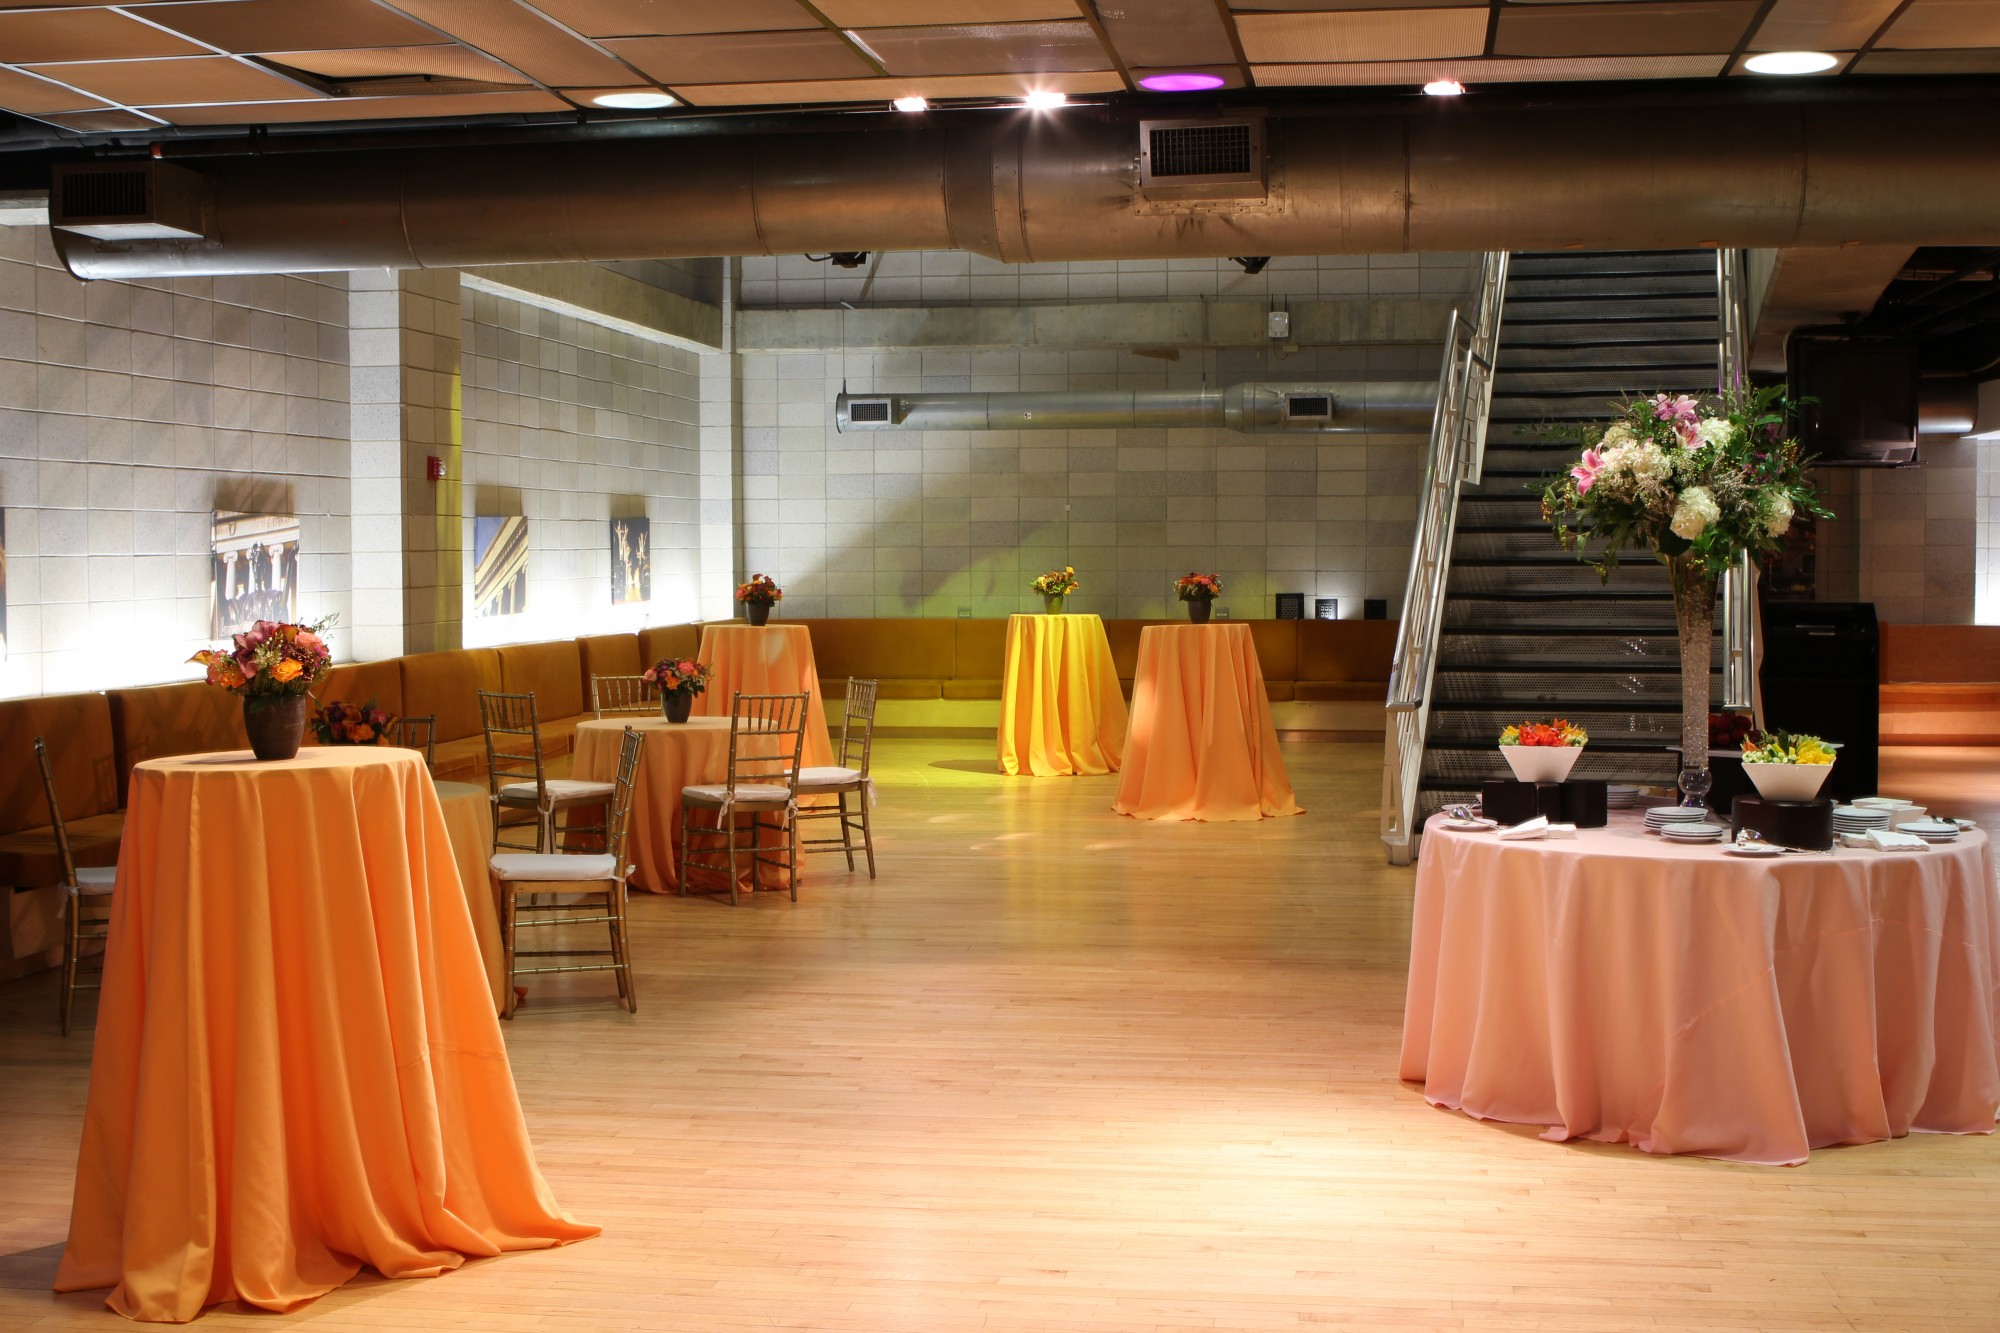 A large, open space with wooden floors and concrete walls. Cocktail tables are set-up around the room, draped with orange tablecloths. A large staircase leads to an upper level.